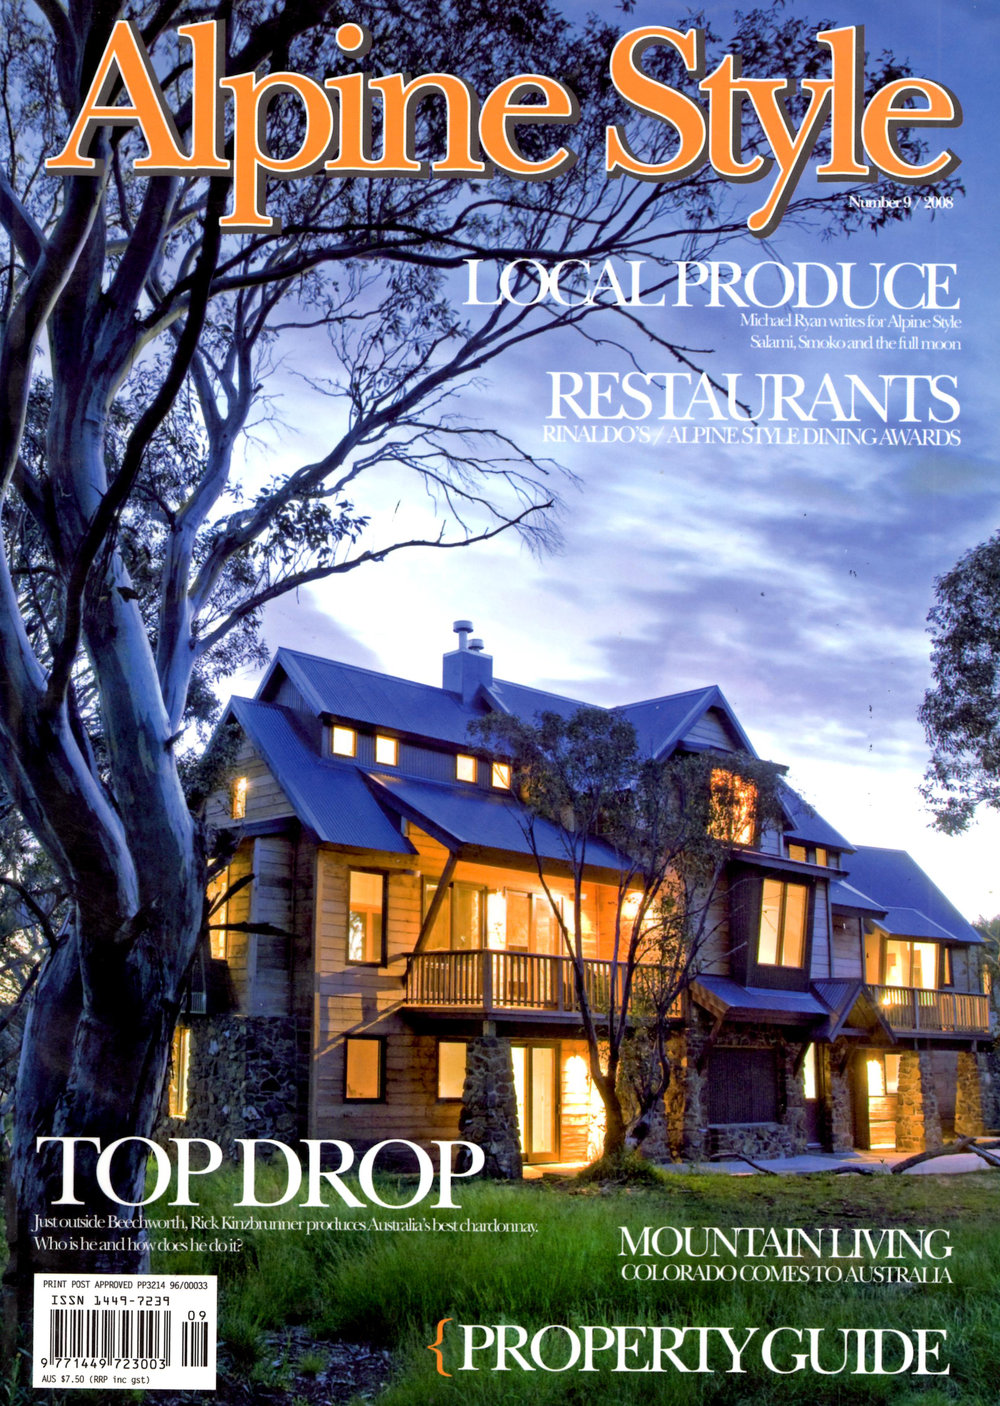 Alpine Style - Nov 2008 Cover - Mooselodge.jpg